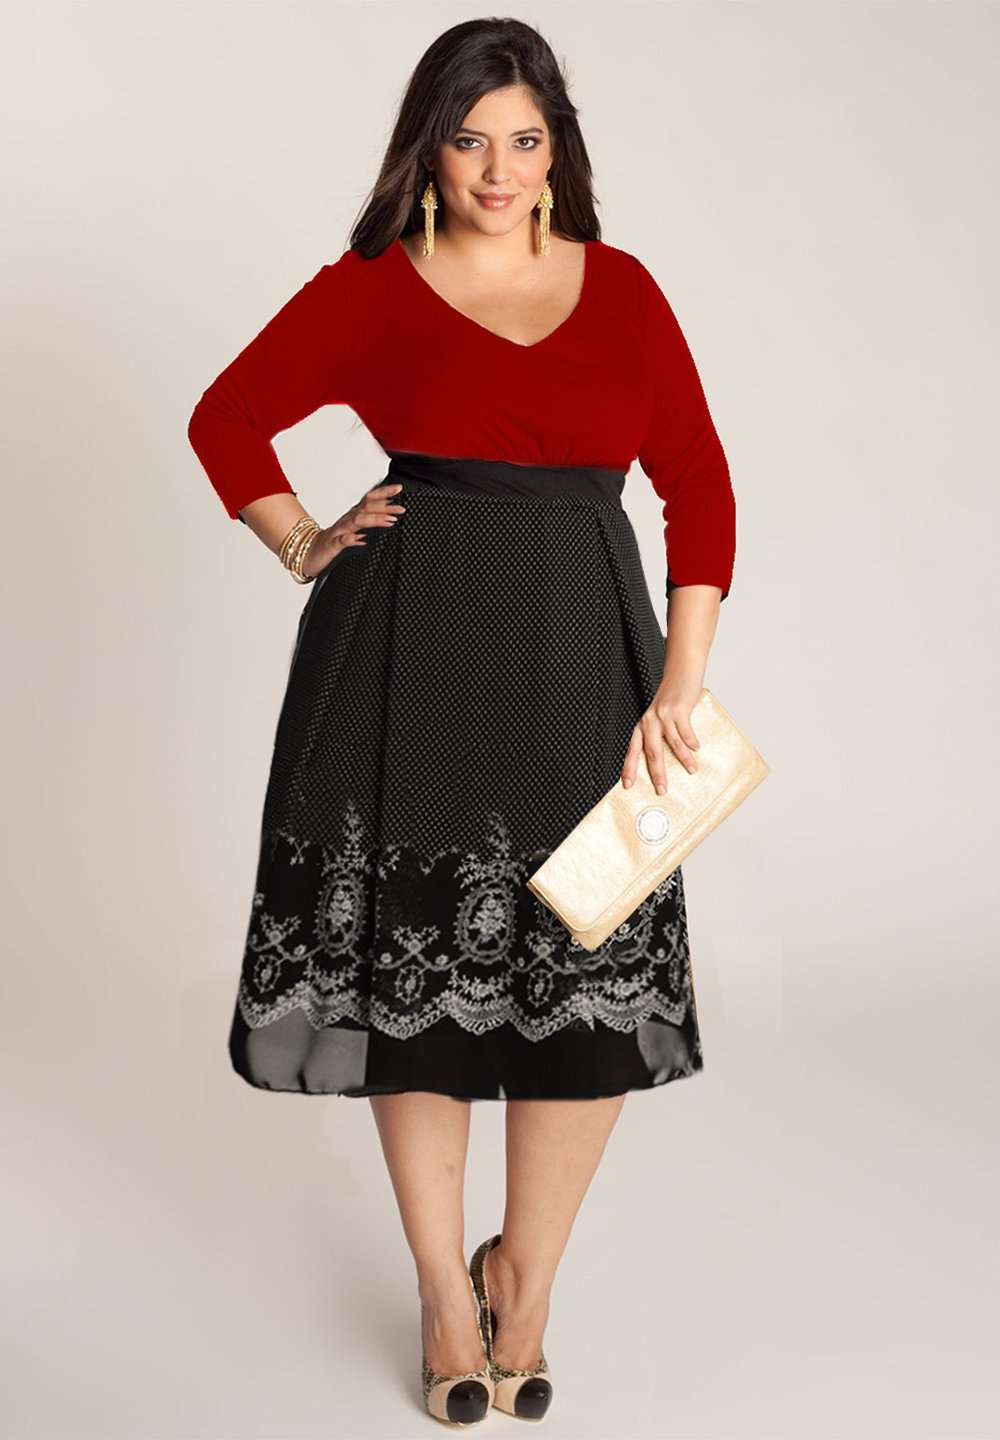 Braylee Plus Size Dress In Red (Made To Order)